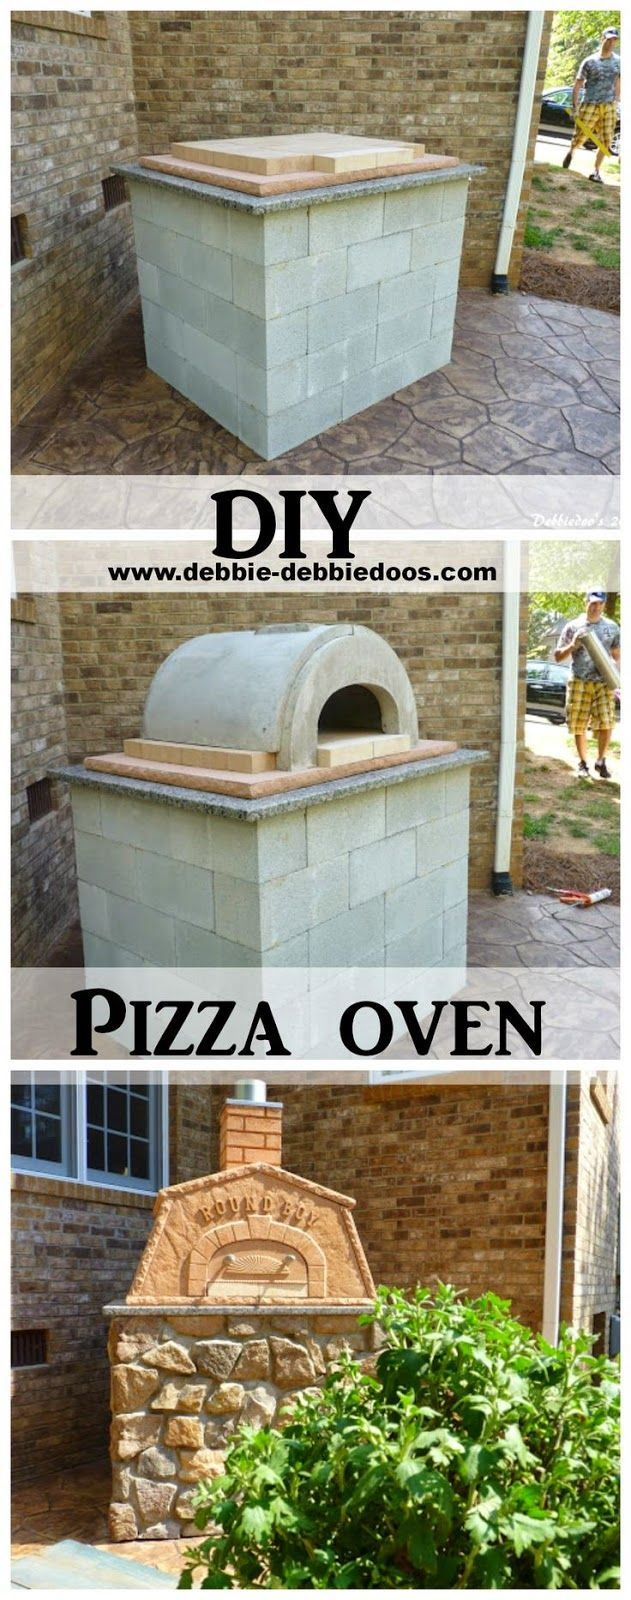 1000 Ideas About Outdoor Pizza Ovens On Pinterest Pizza Ovens Fire Pizza And Brick Ovens